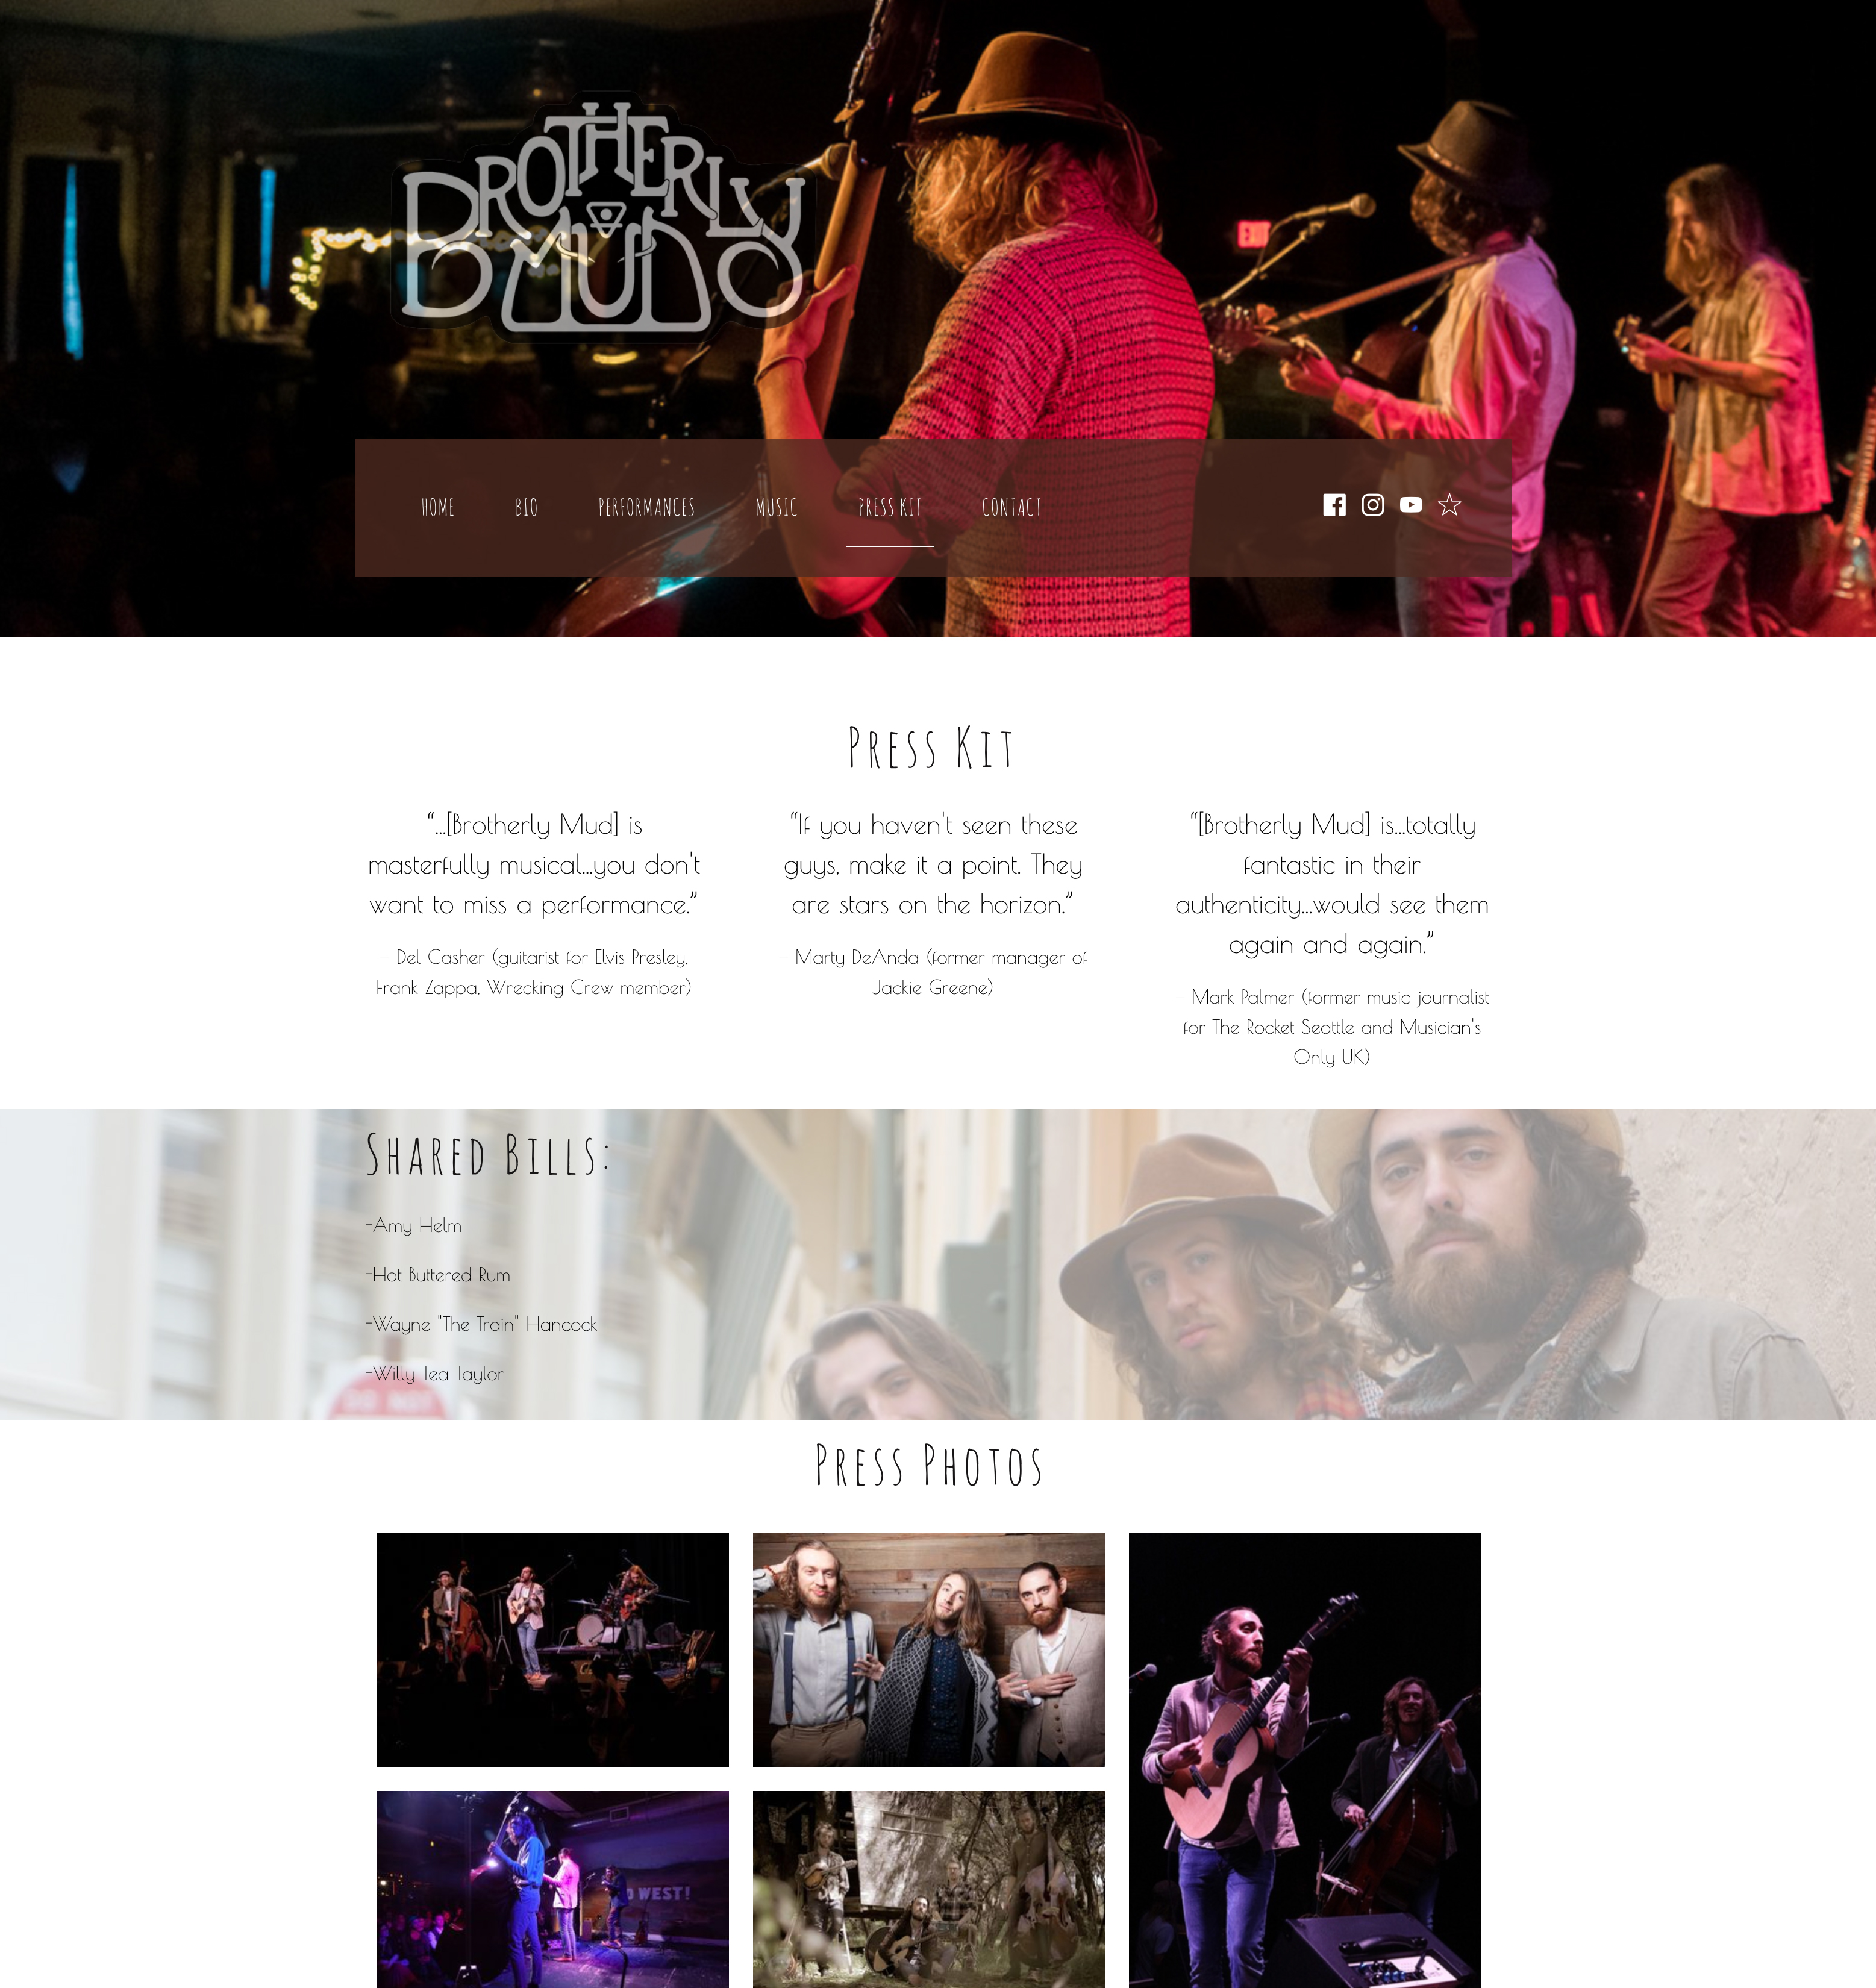 Music website press kit example